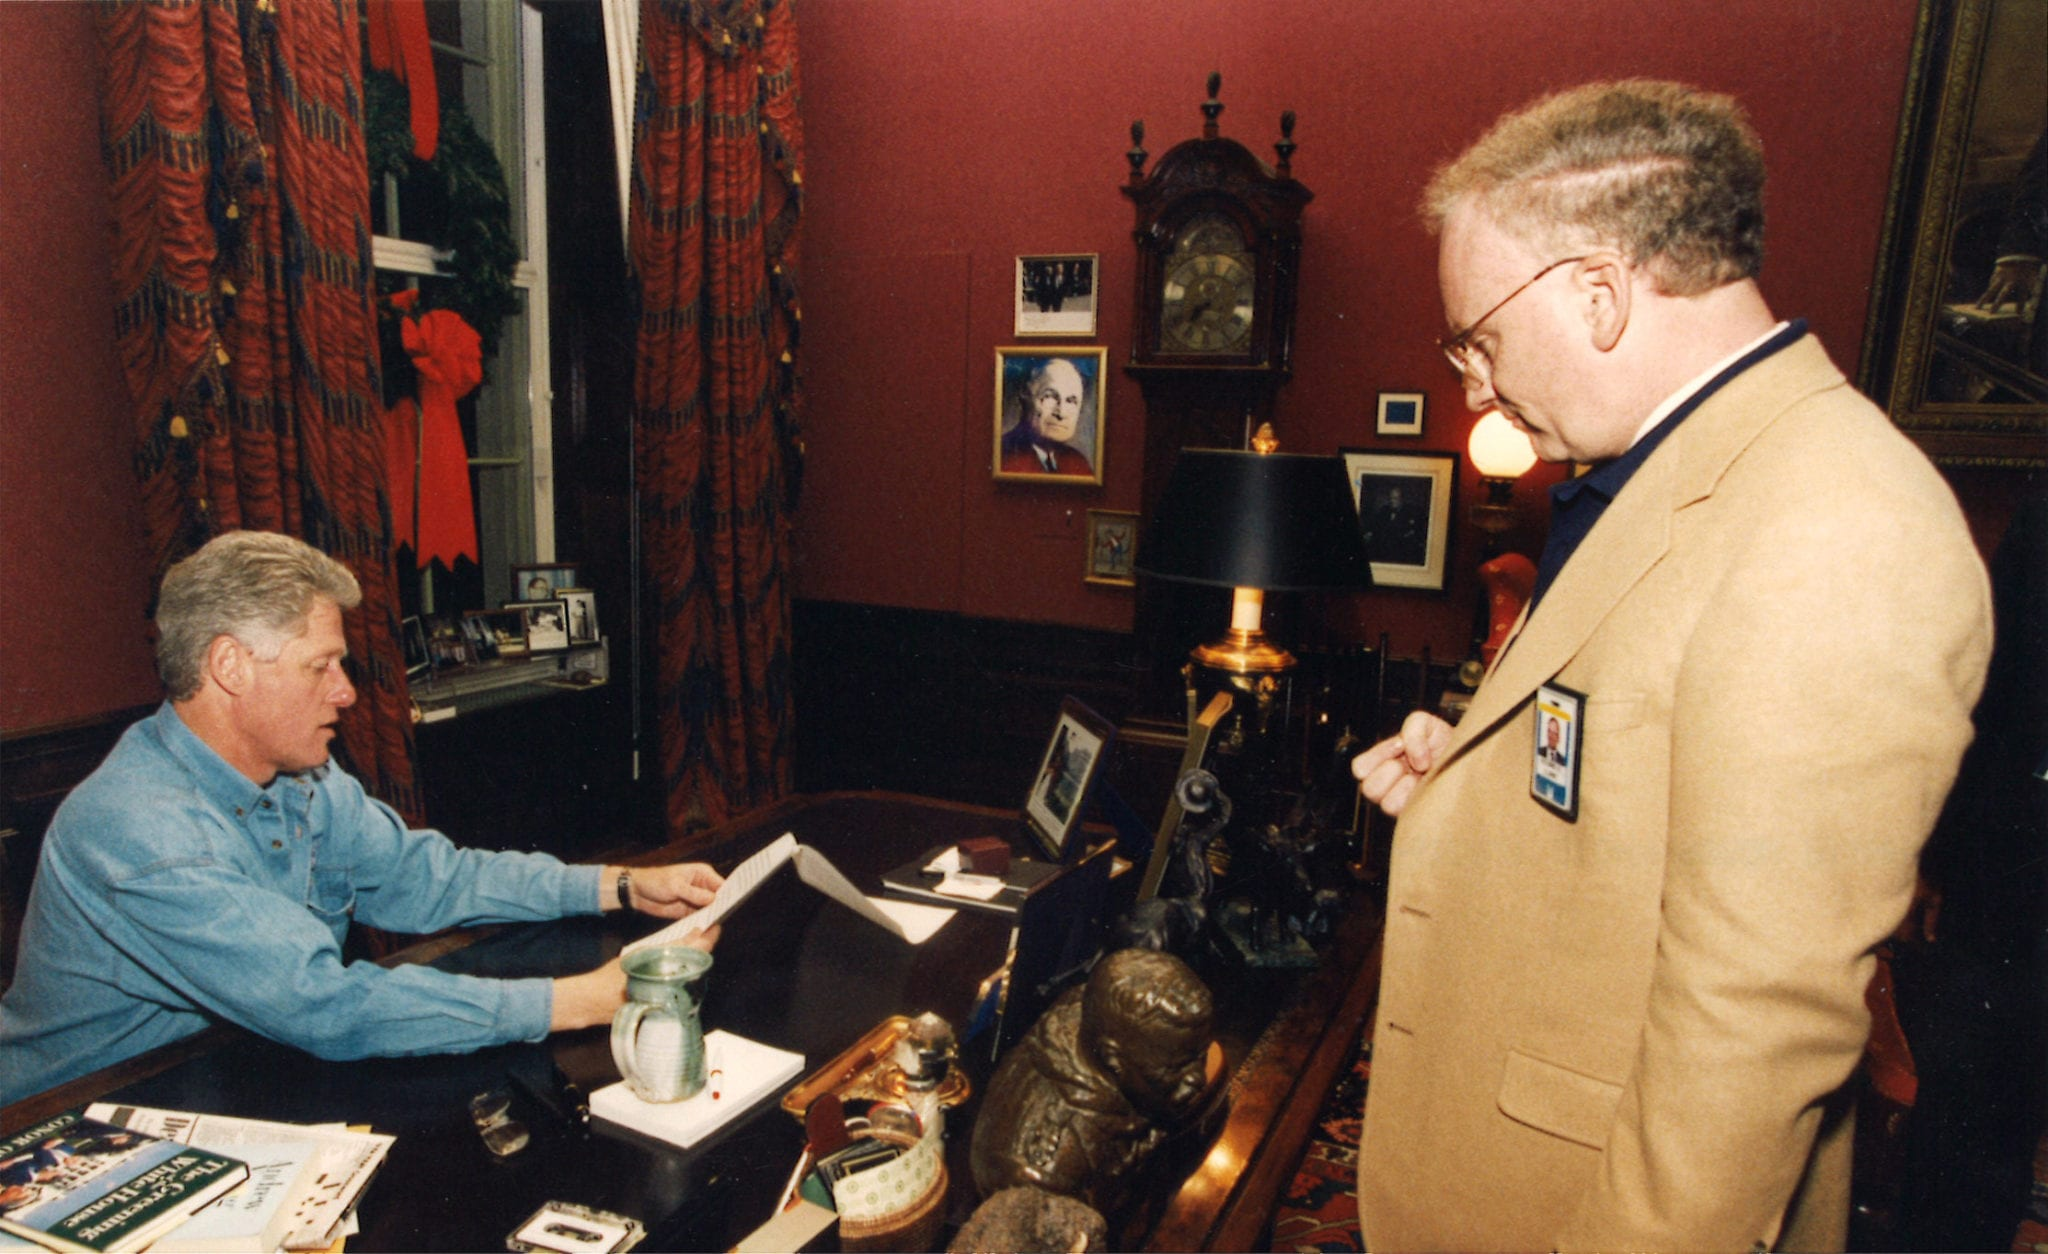 Clarke meeting with President Clinton